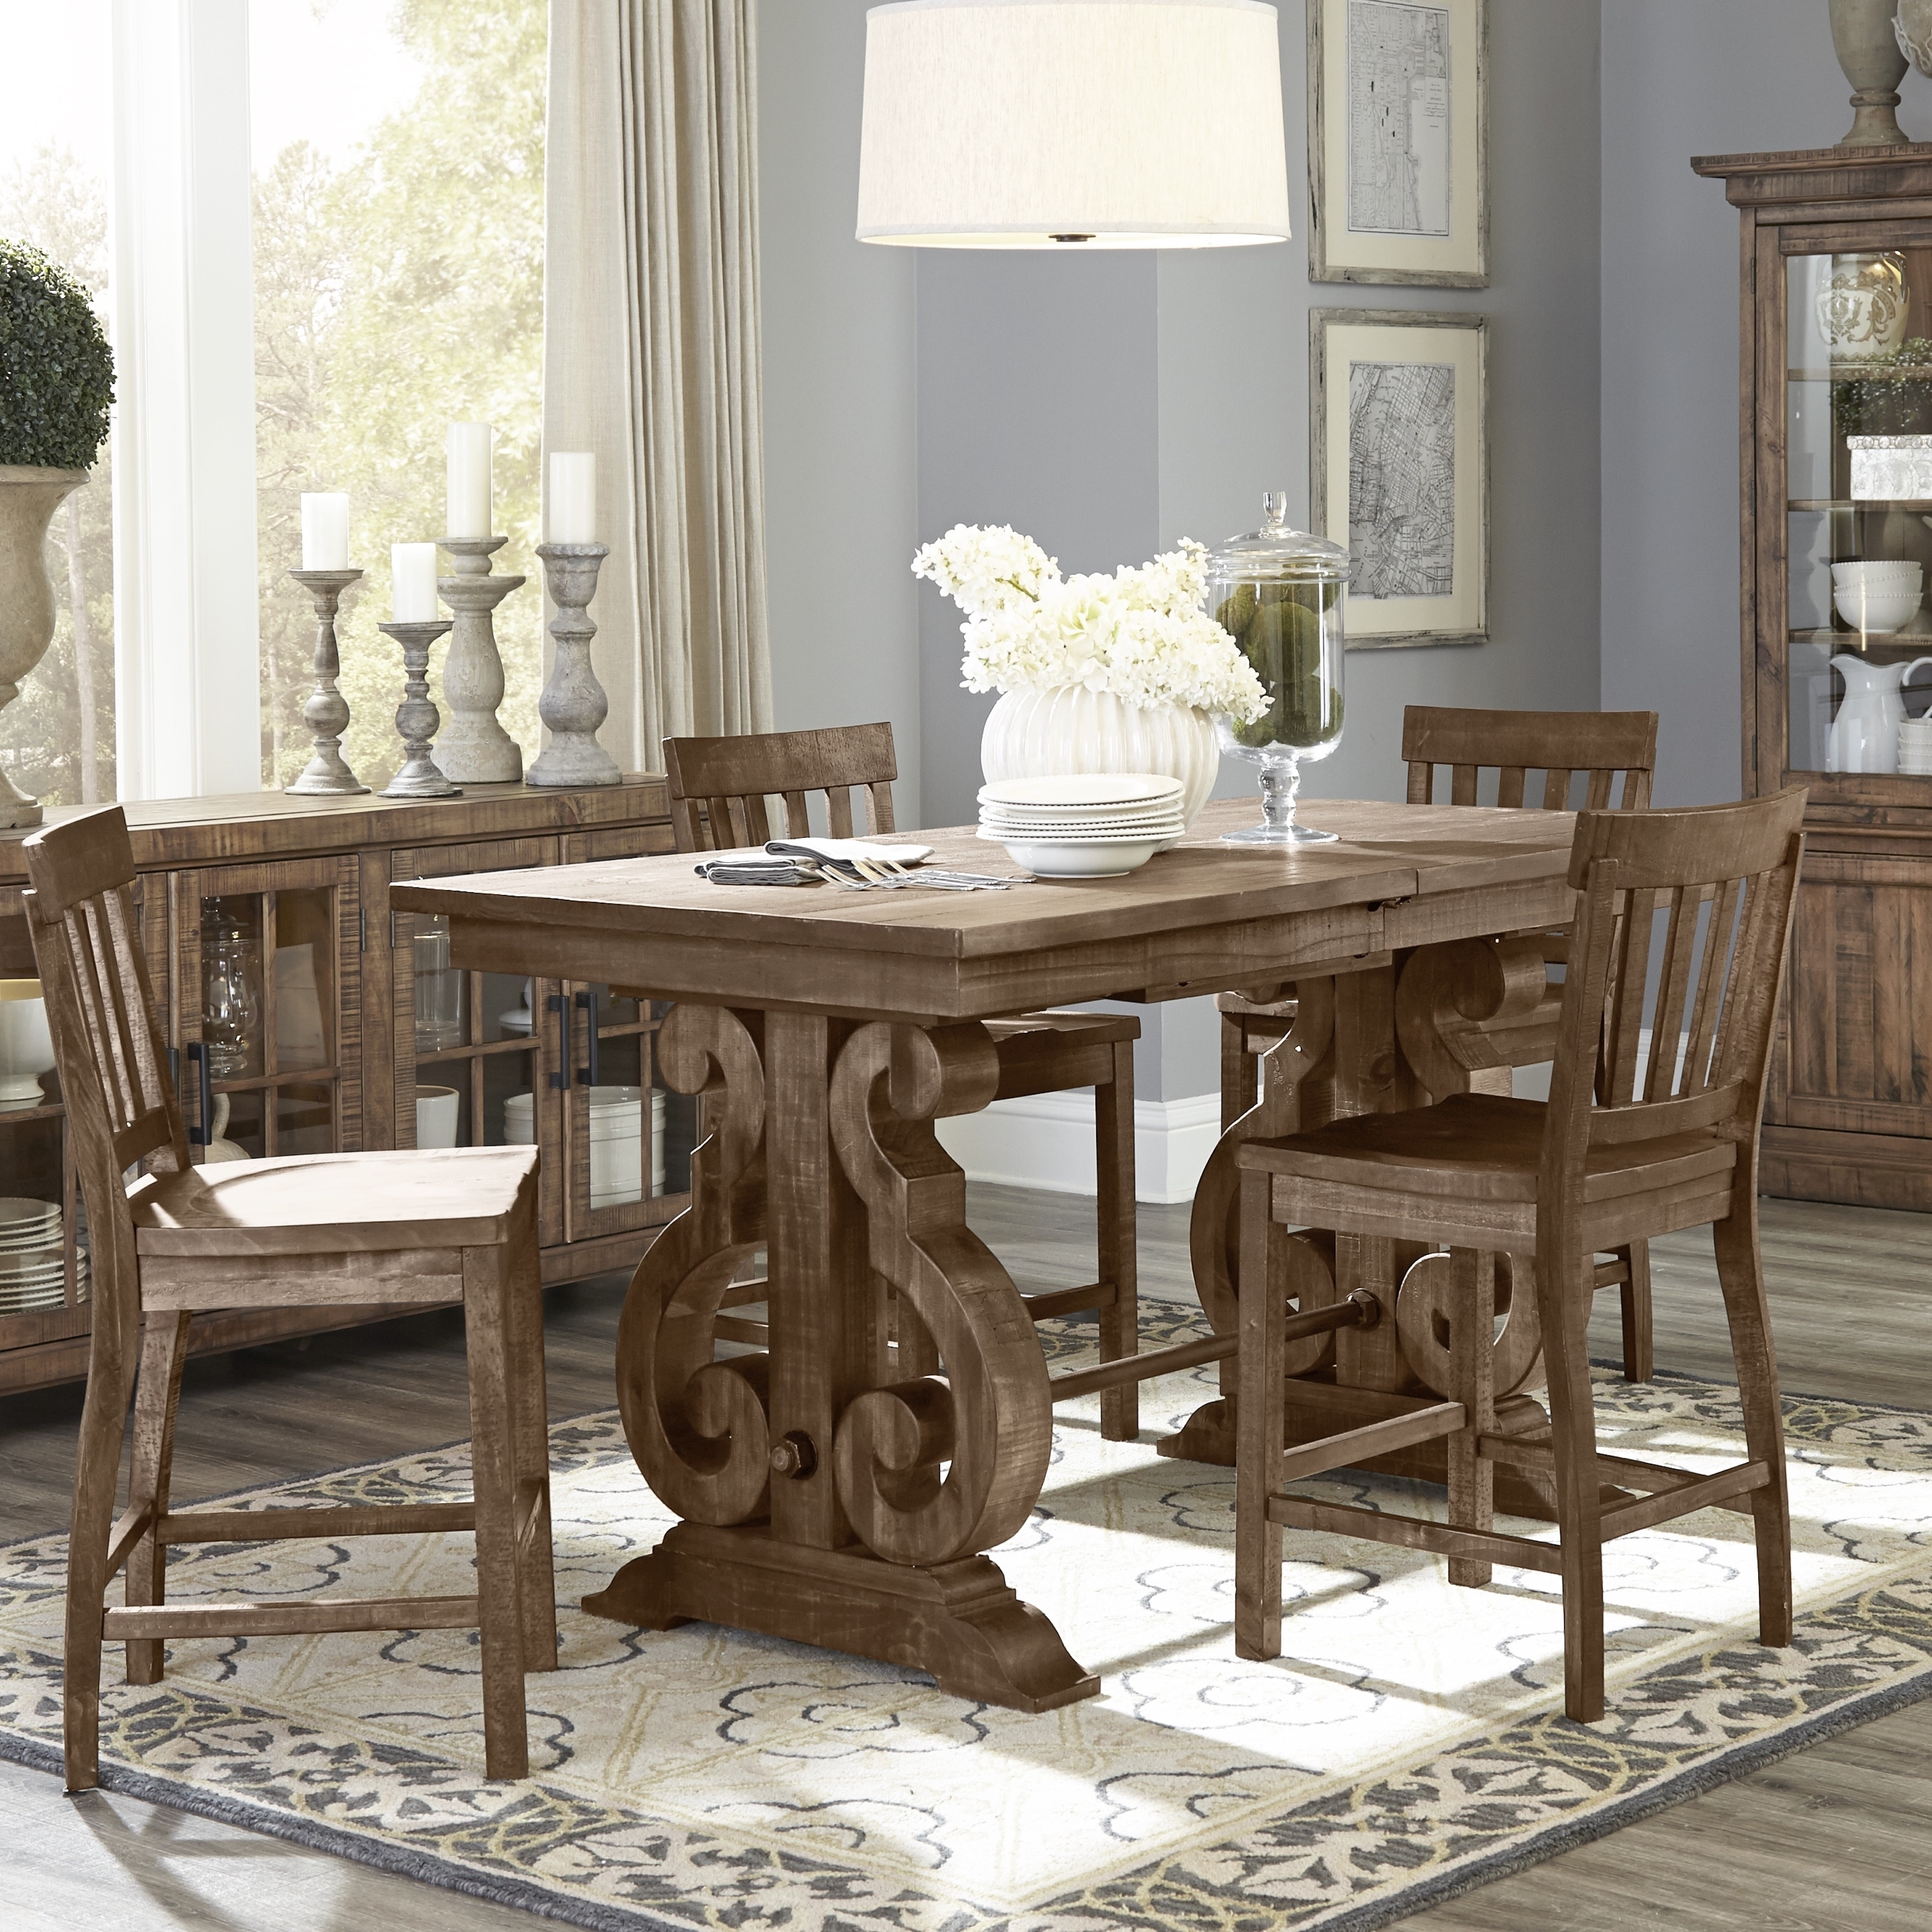 table height counter mark p chairs and crw crown tables conner stools